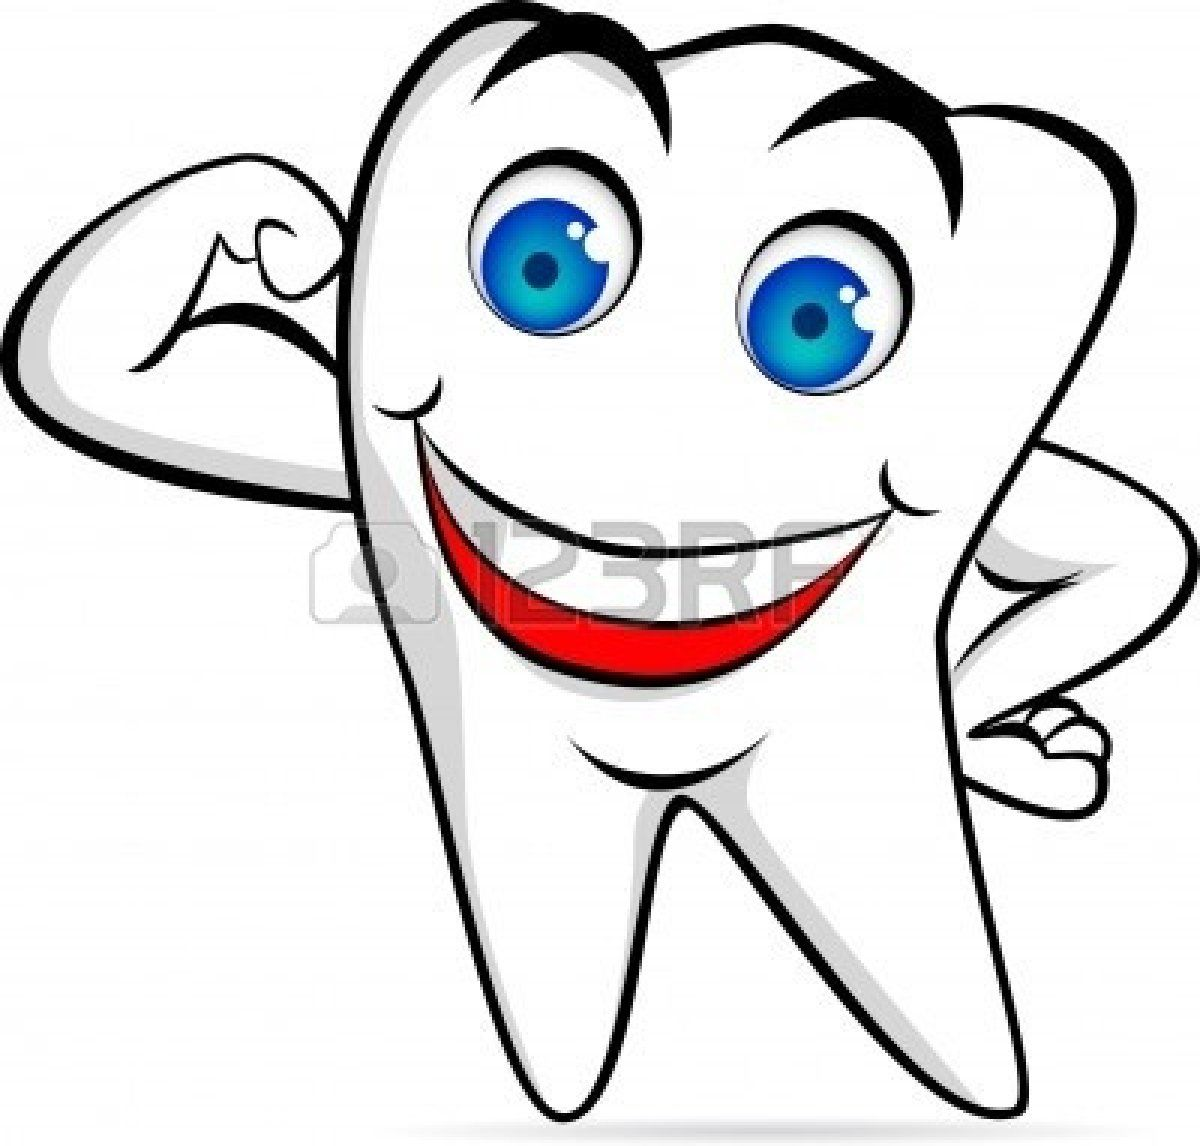 Happy tooth clipart jpg library library Happy Tooth Clip Art | Clipart Panda - Free Clipart Images ... jpg library library